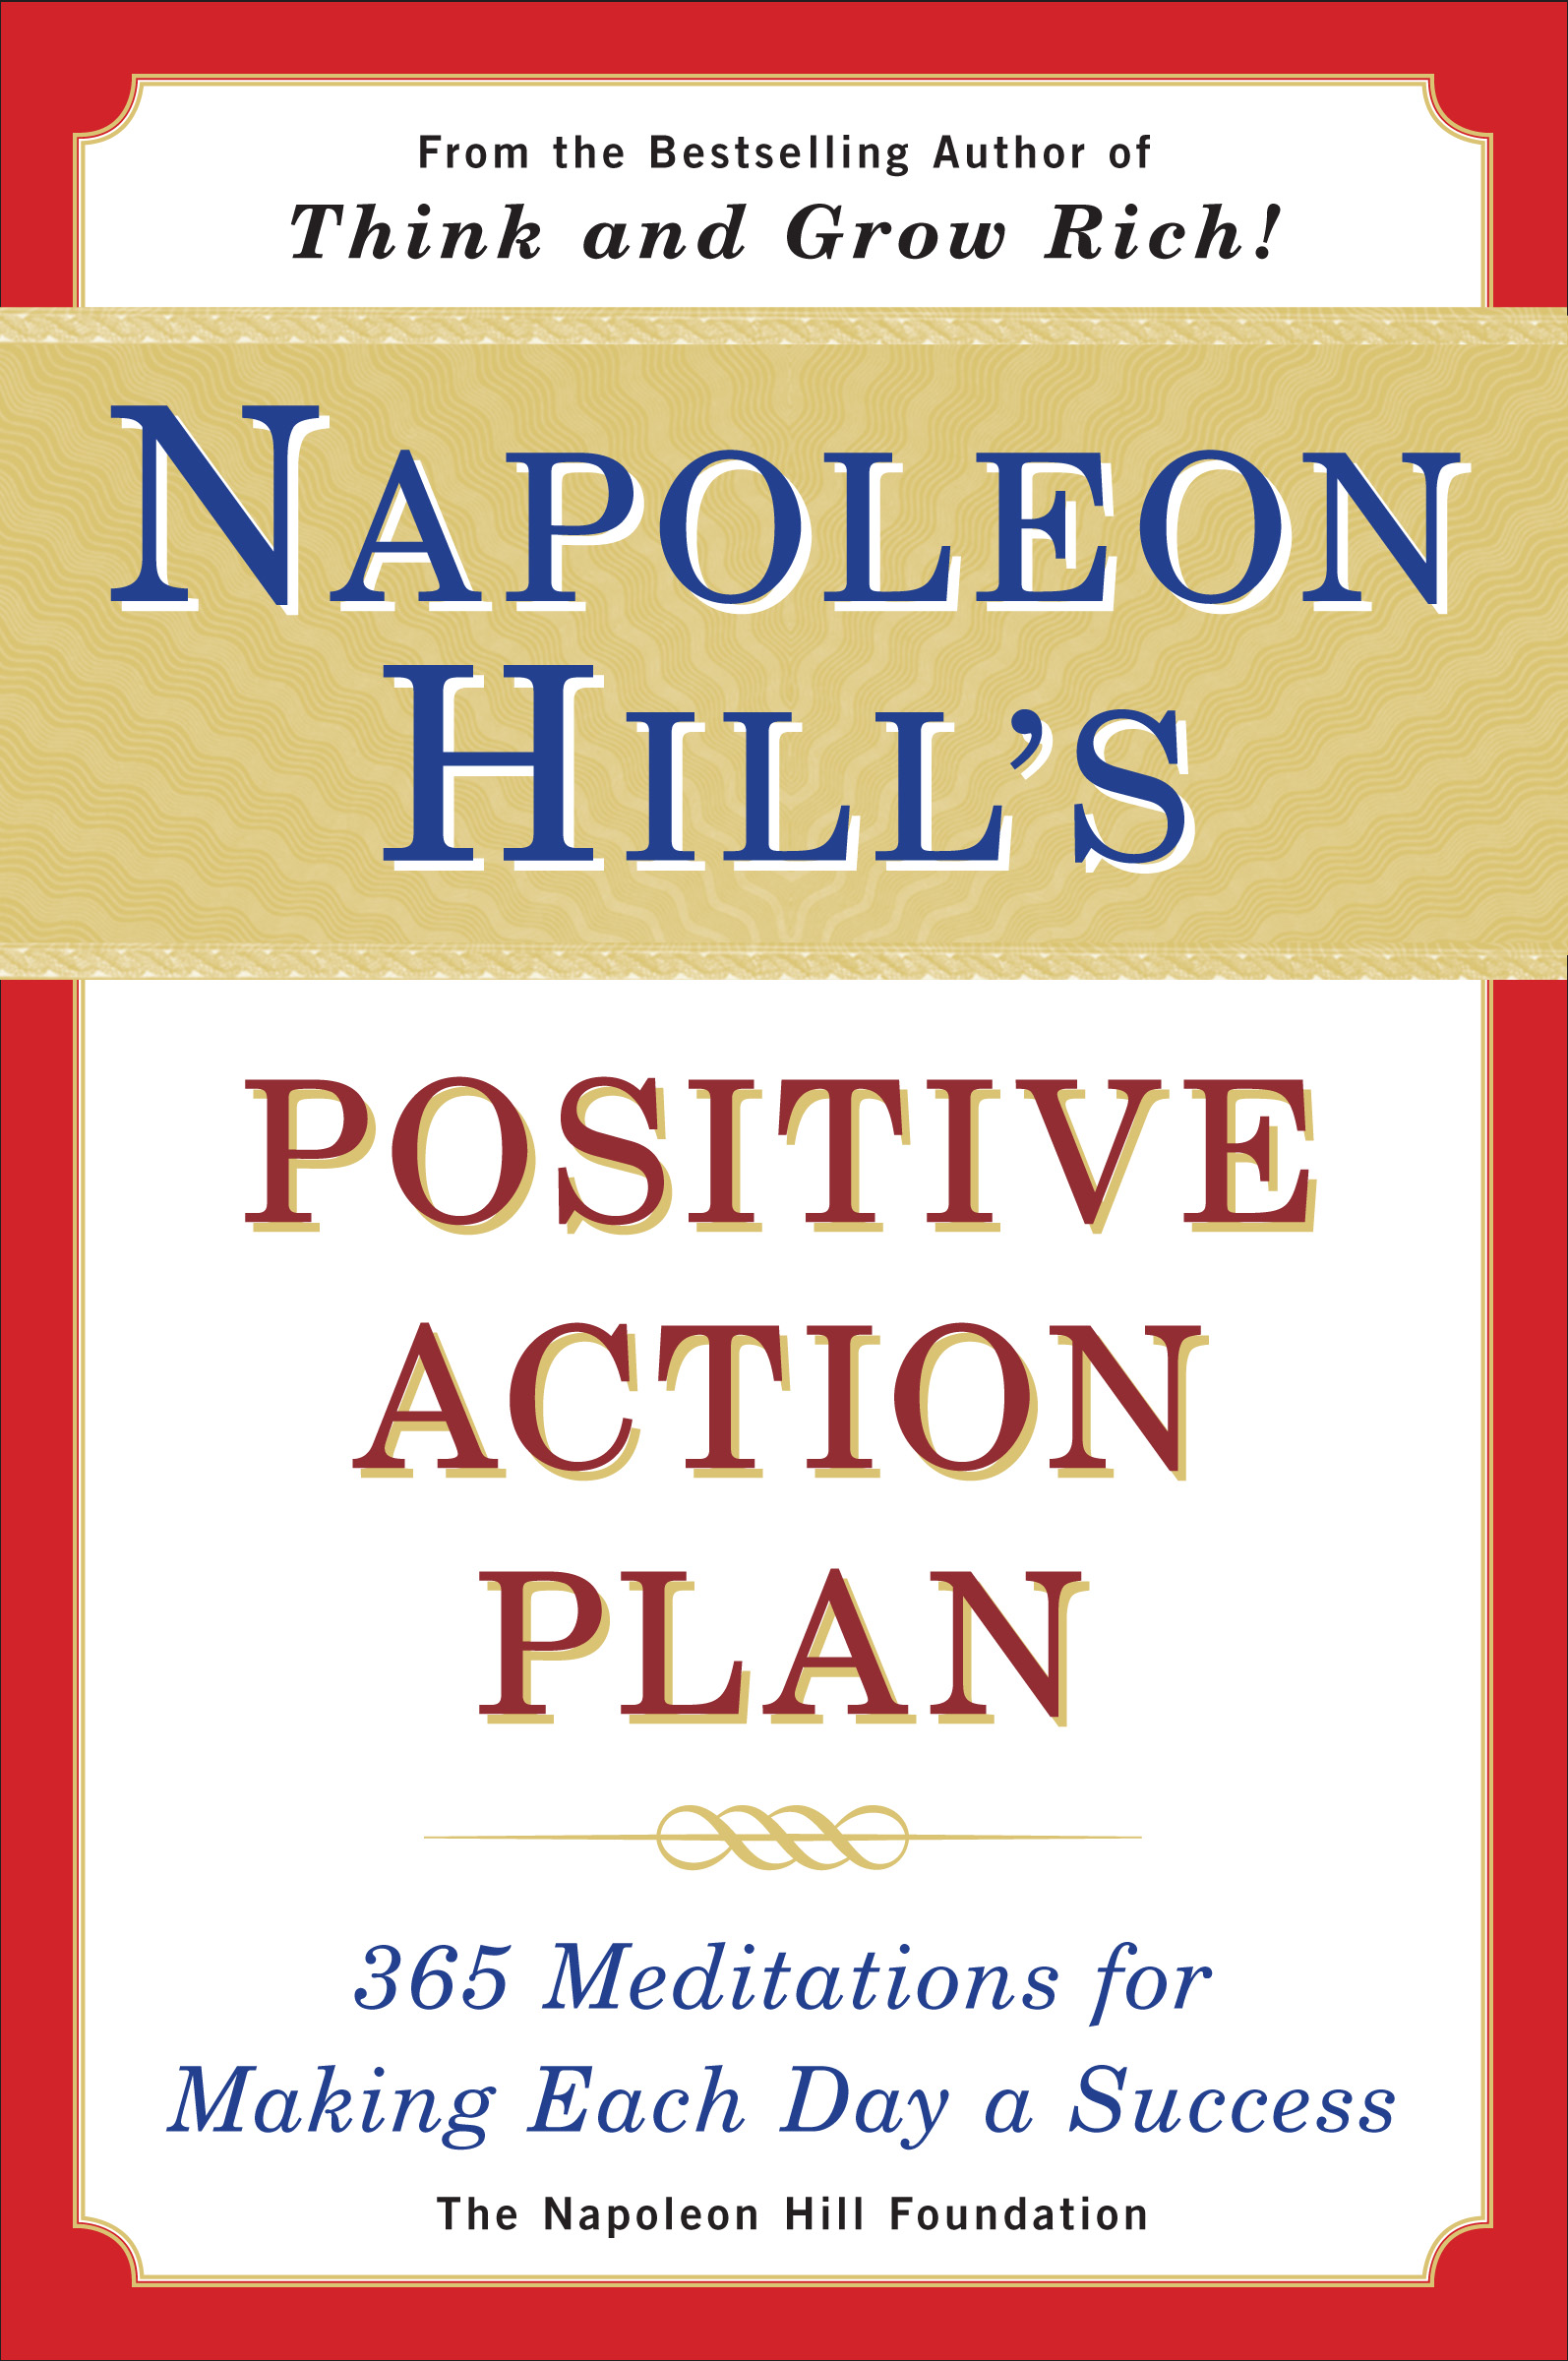 Napoleon Hill's Positive Action Plan 365 Meditations For Making Each Day a Success  by Napoleon Hill